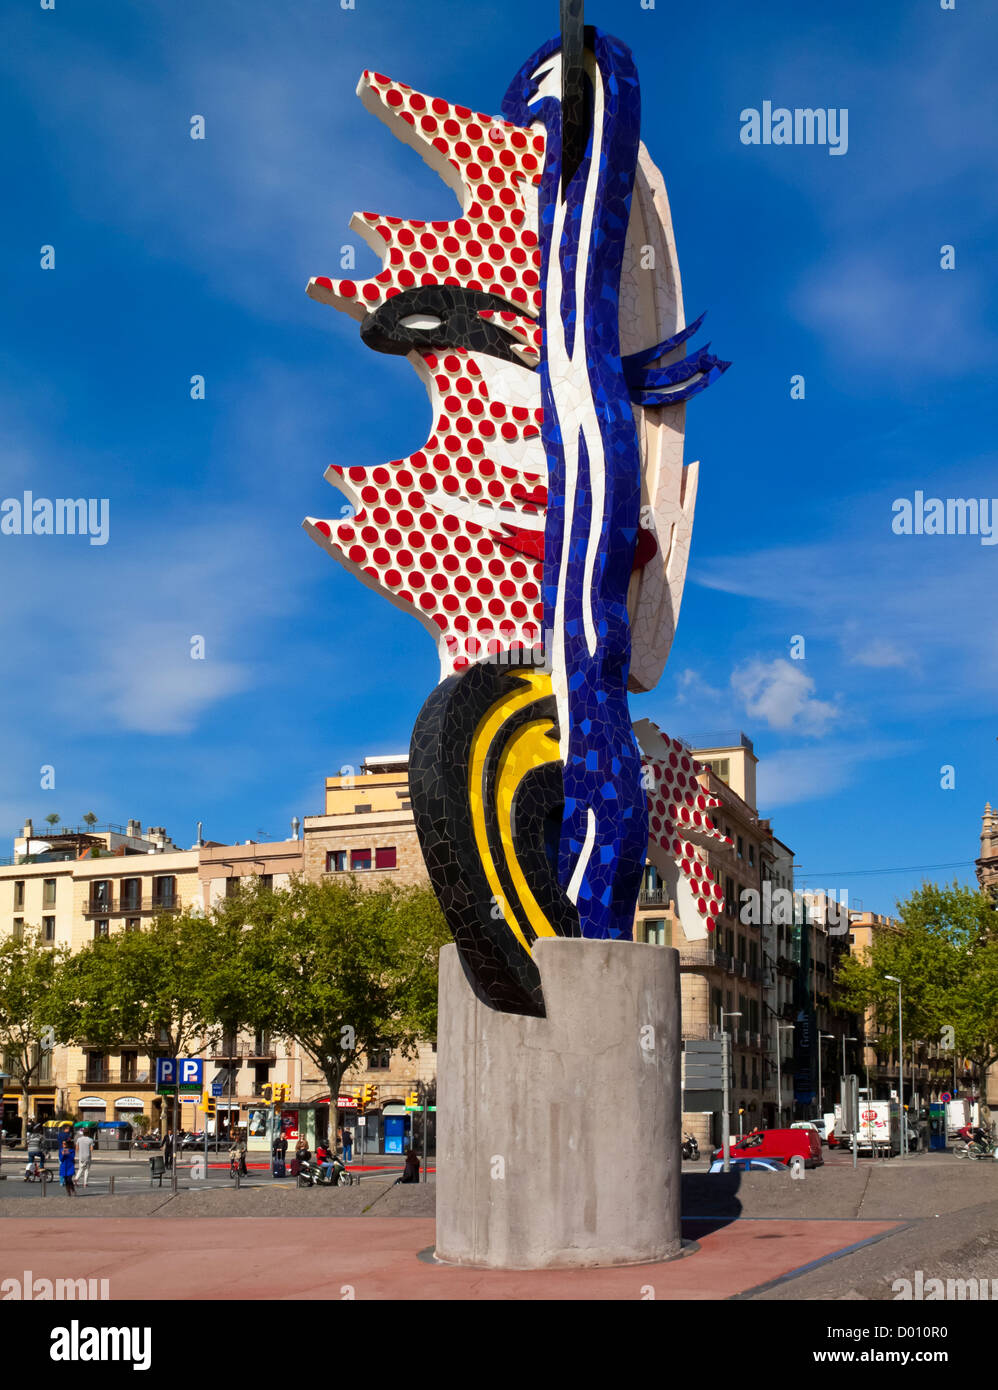 21c3740fd0a Ceramic sculpture El Cap de Barcelona or The Head by Roy Lichtenstein  created for the 1992 summer Olympics held in Barcelona